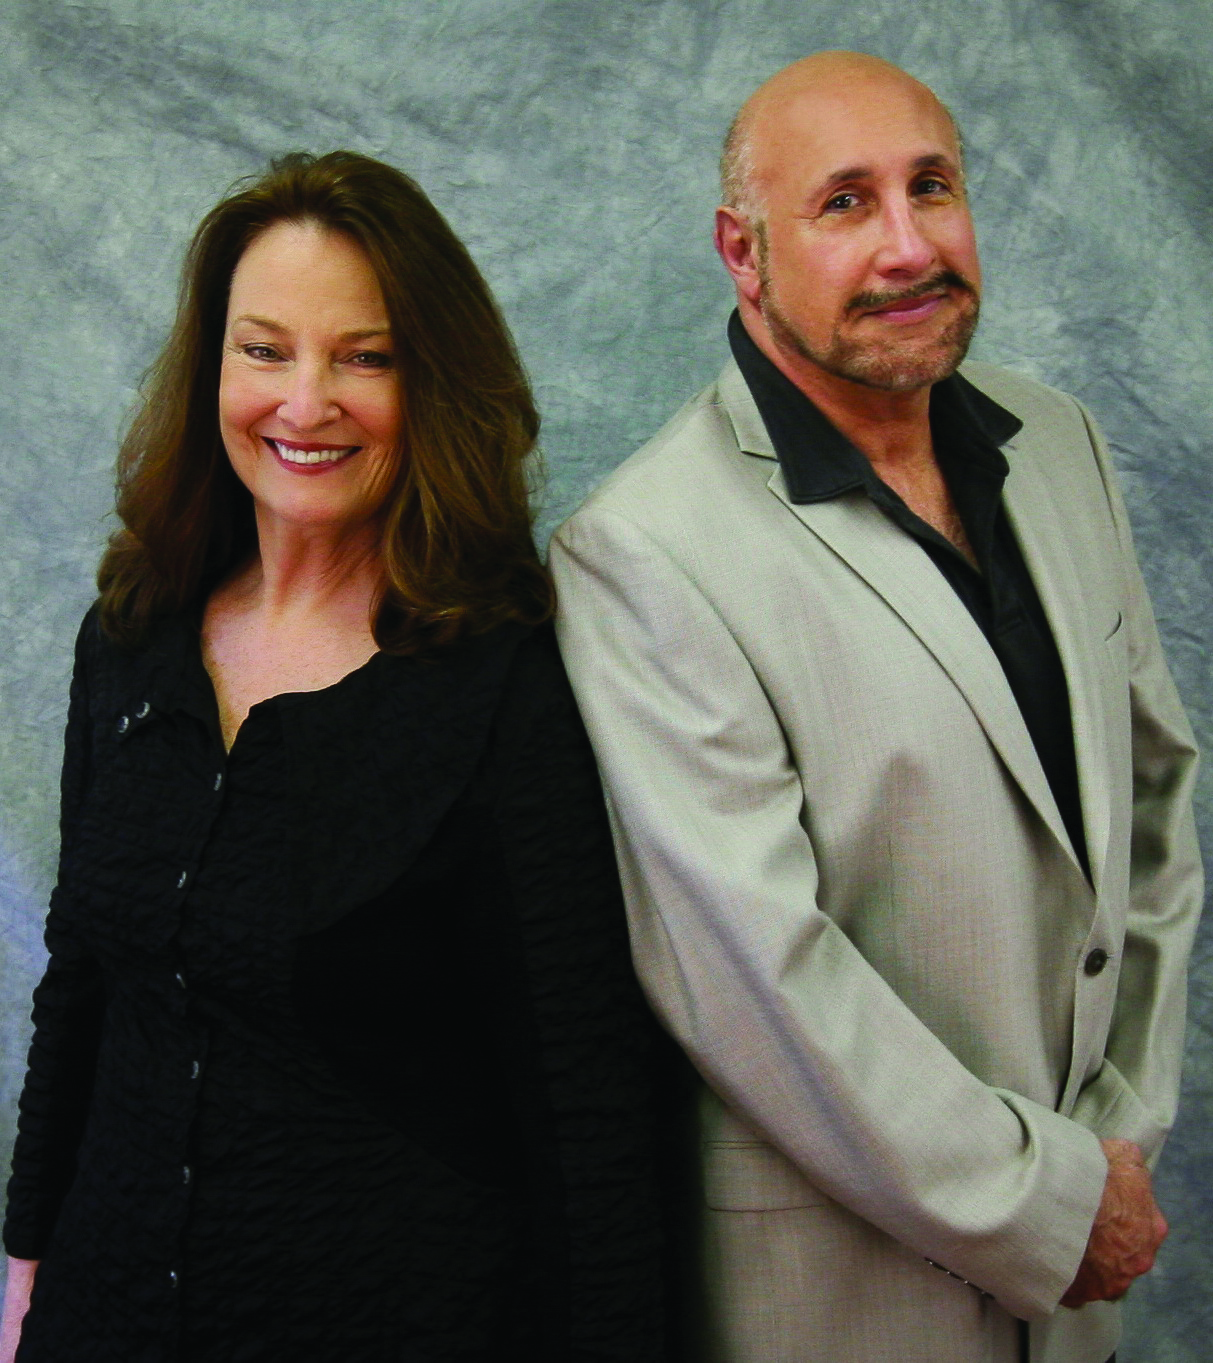 Beth Davis and Steve Feldman